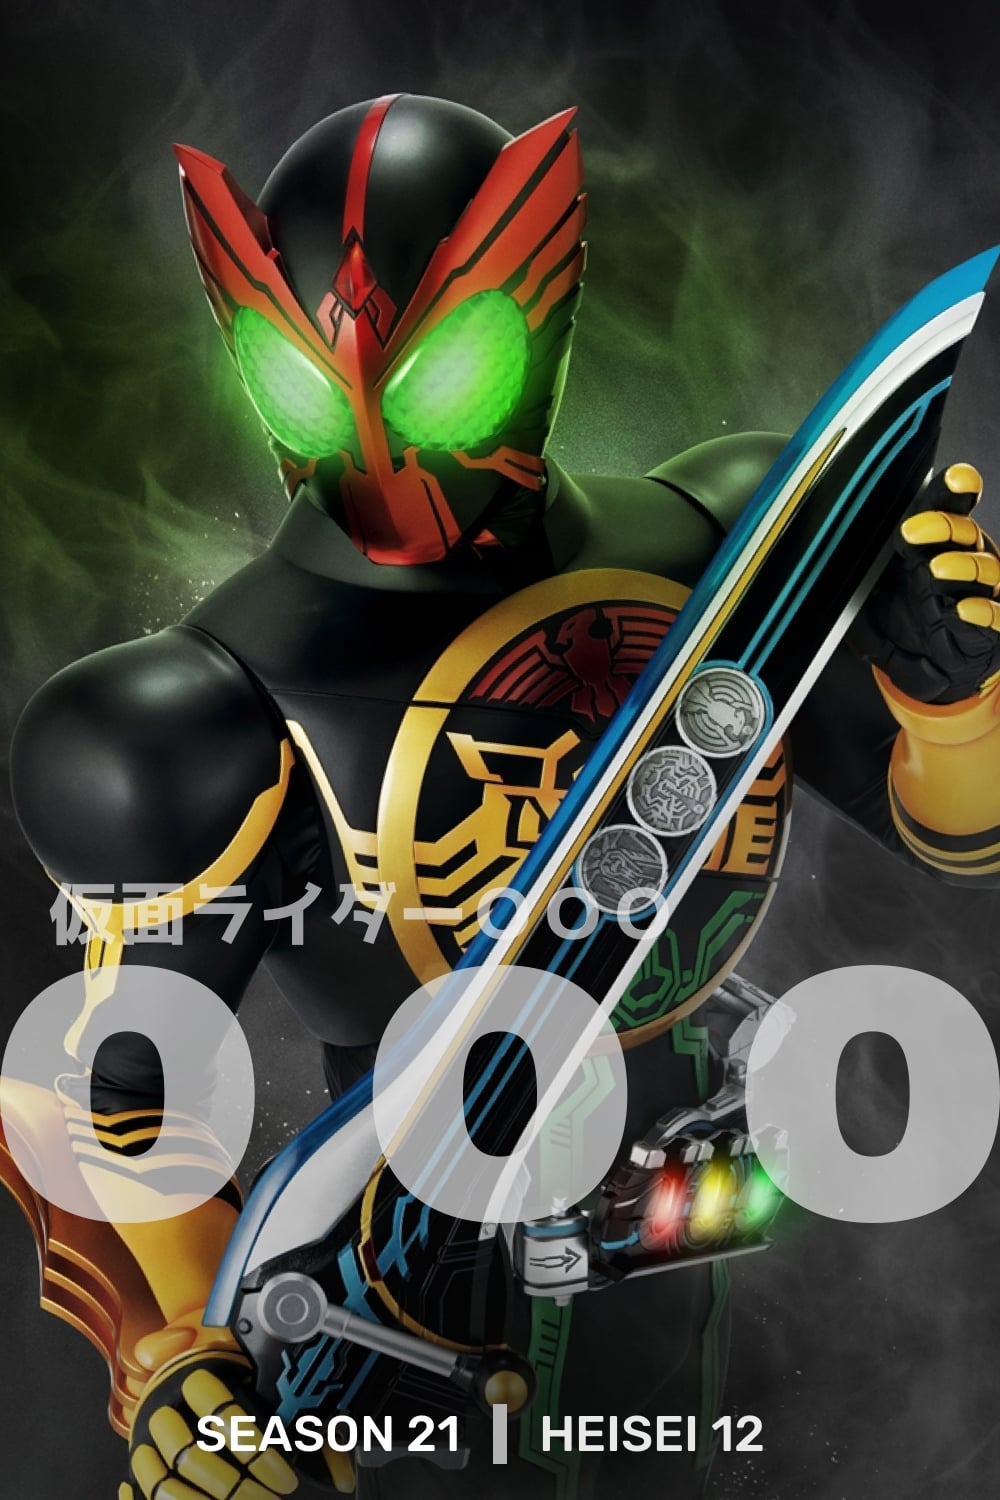 Kamen Rider - Season 21 Episode 30 : King, Panda, Memory of Flame Season 21